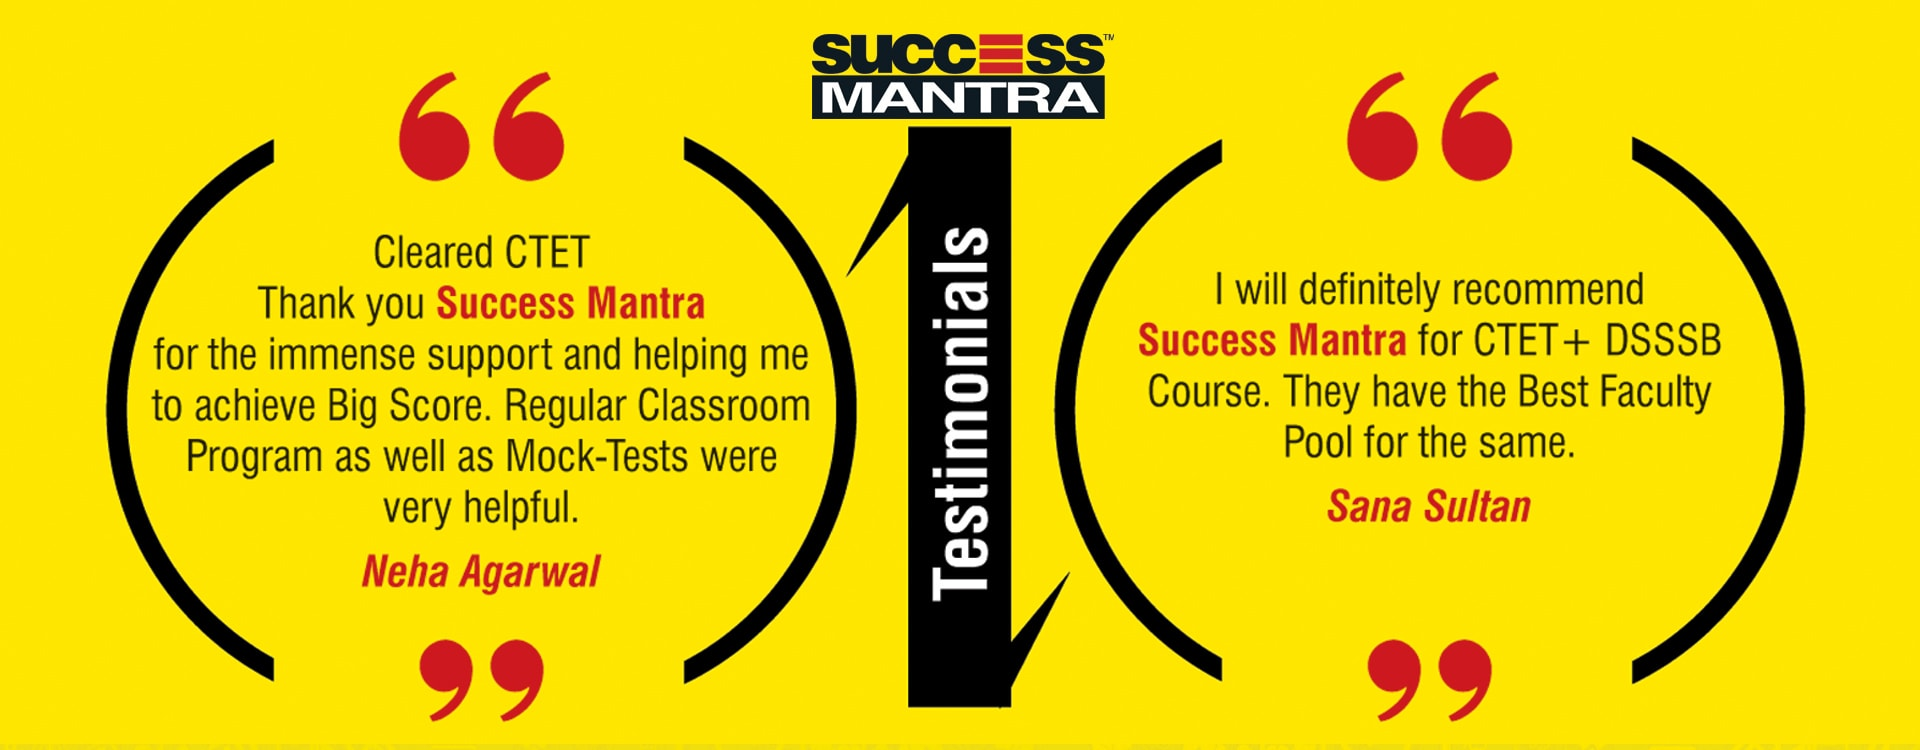 CTET_Coaching_in_Delhi_Success_Mantra_GTB_Nagar_-_4.JPG